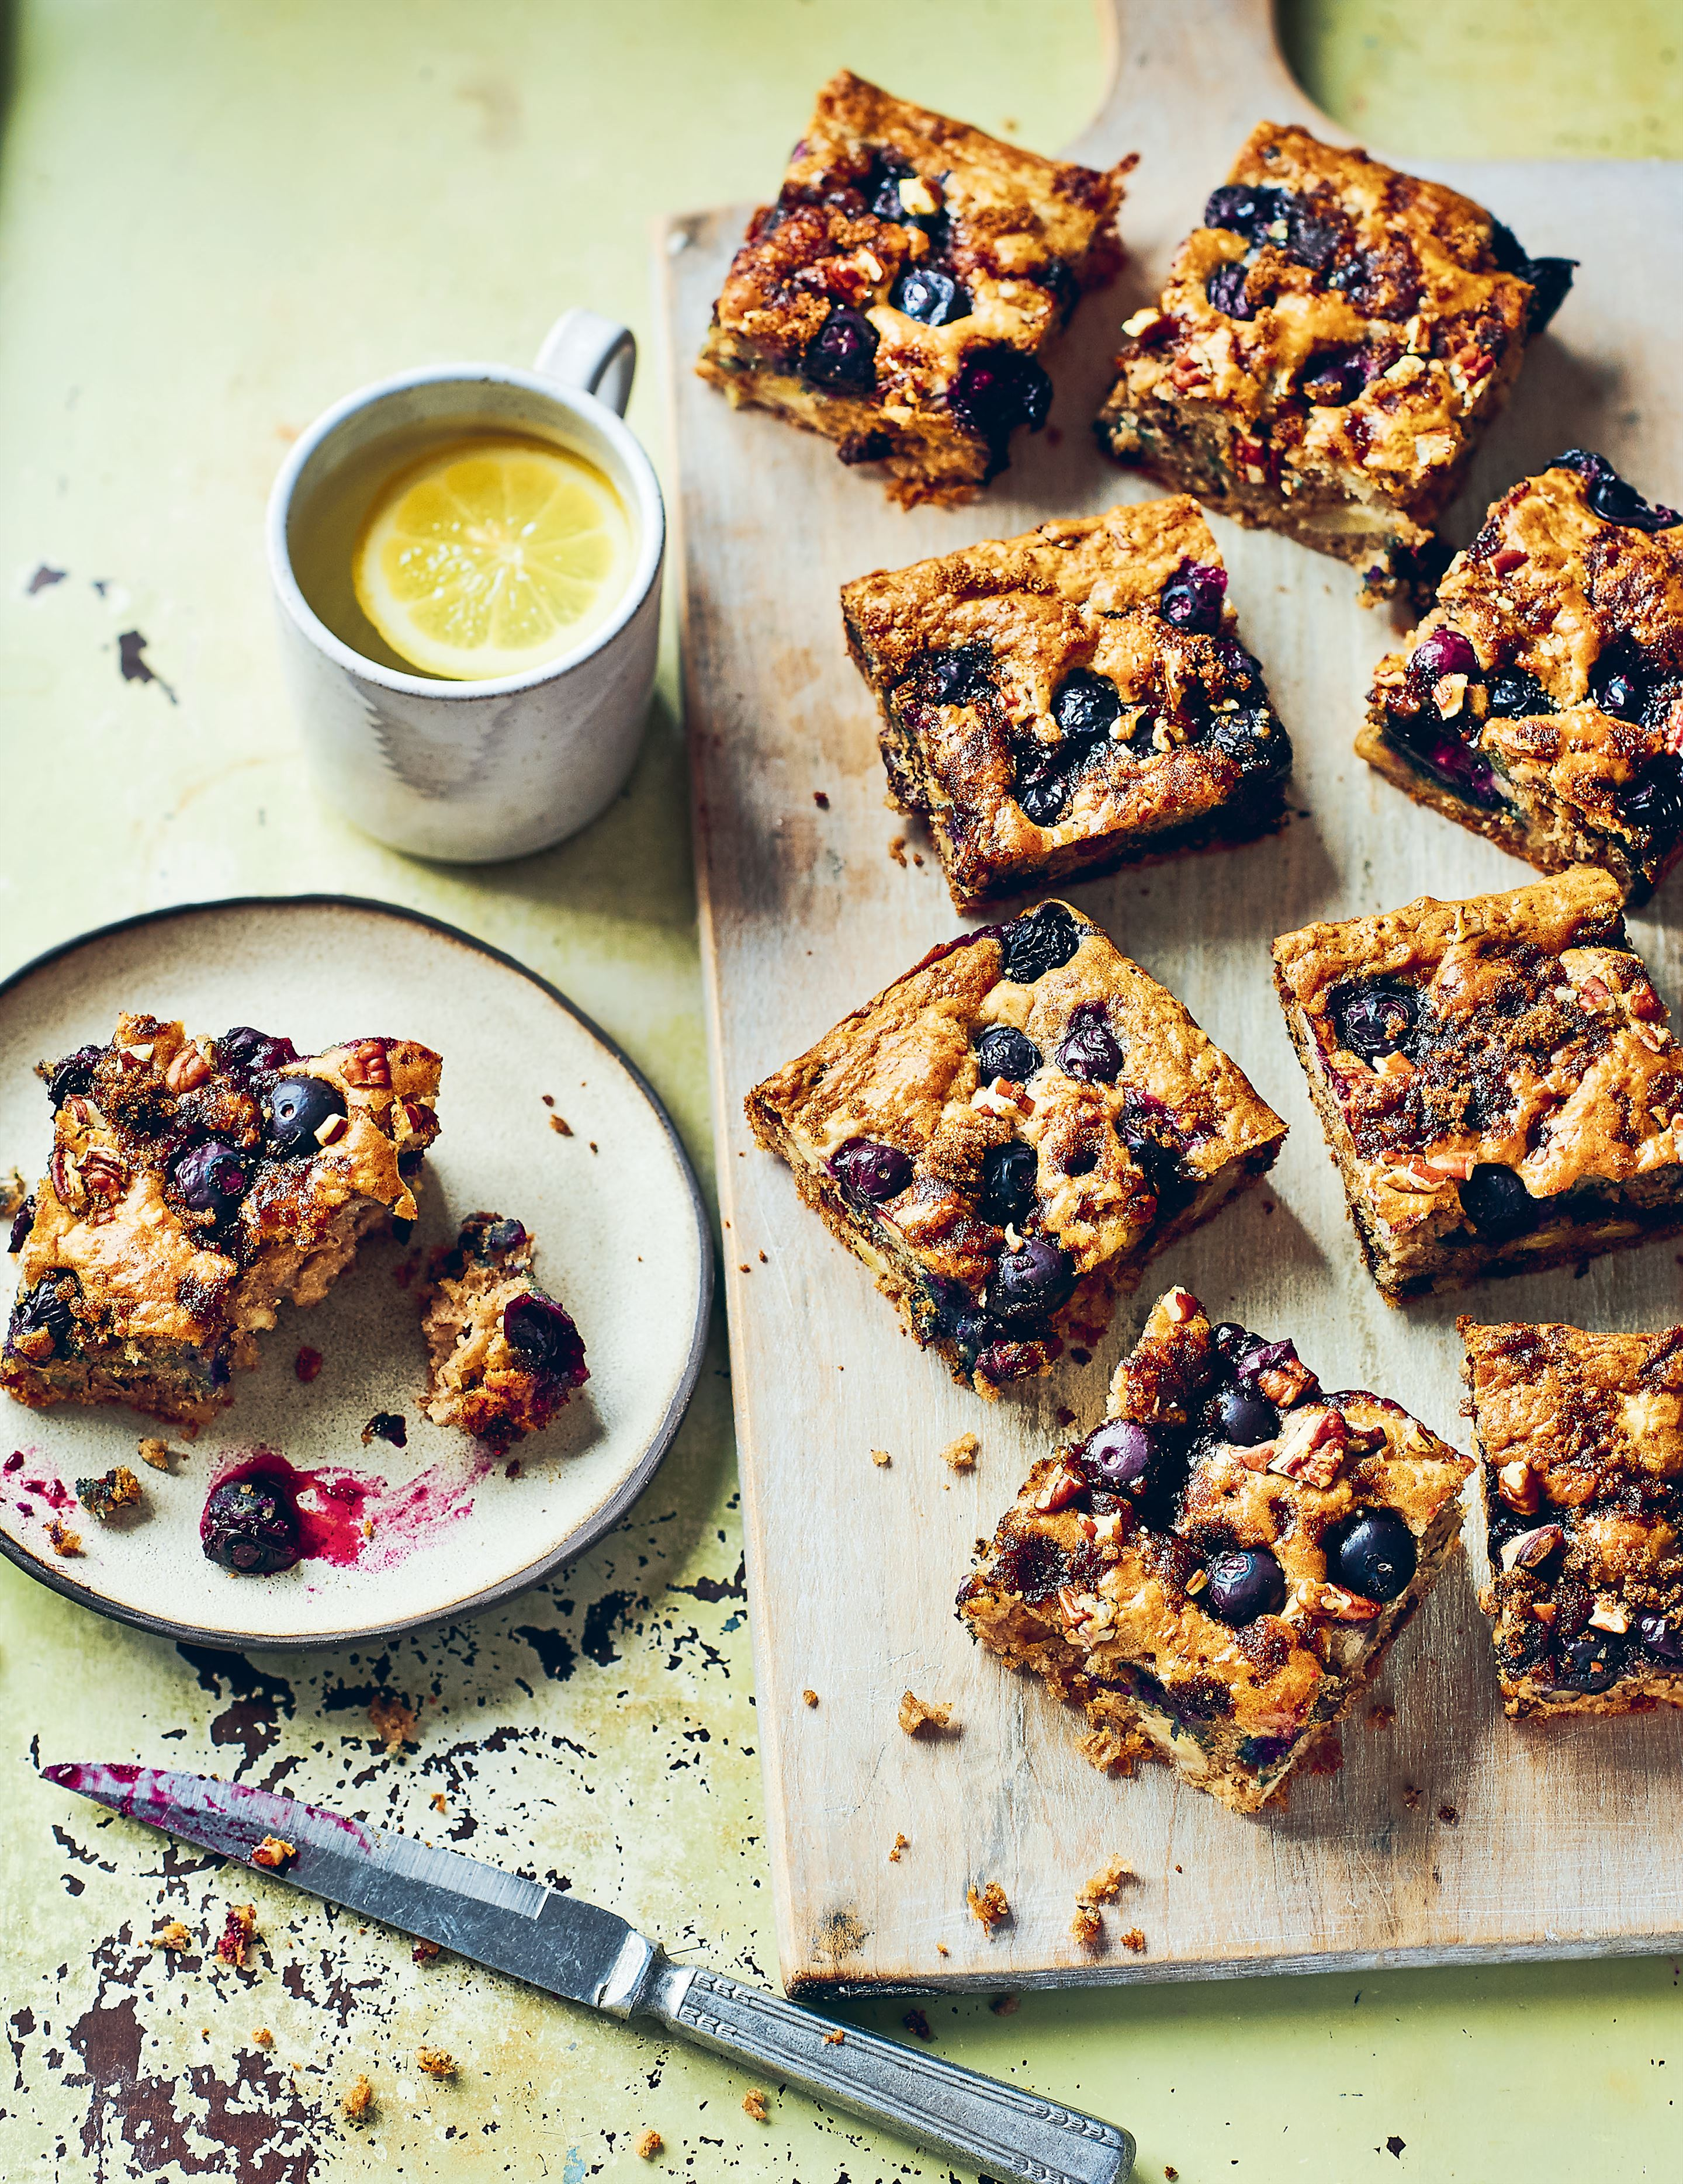 Berry and banana breakfast traybake